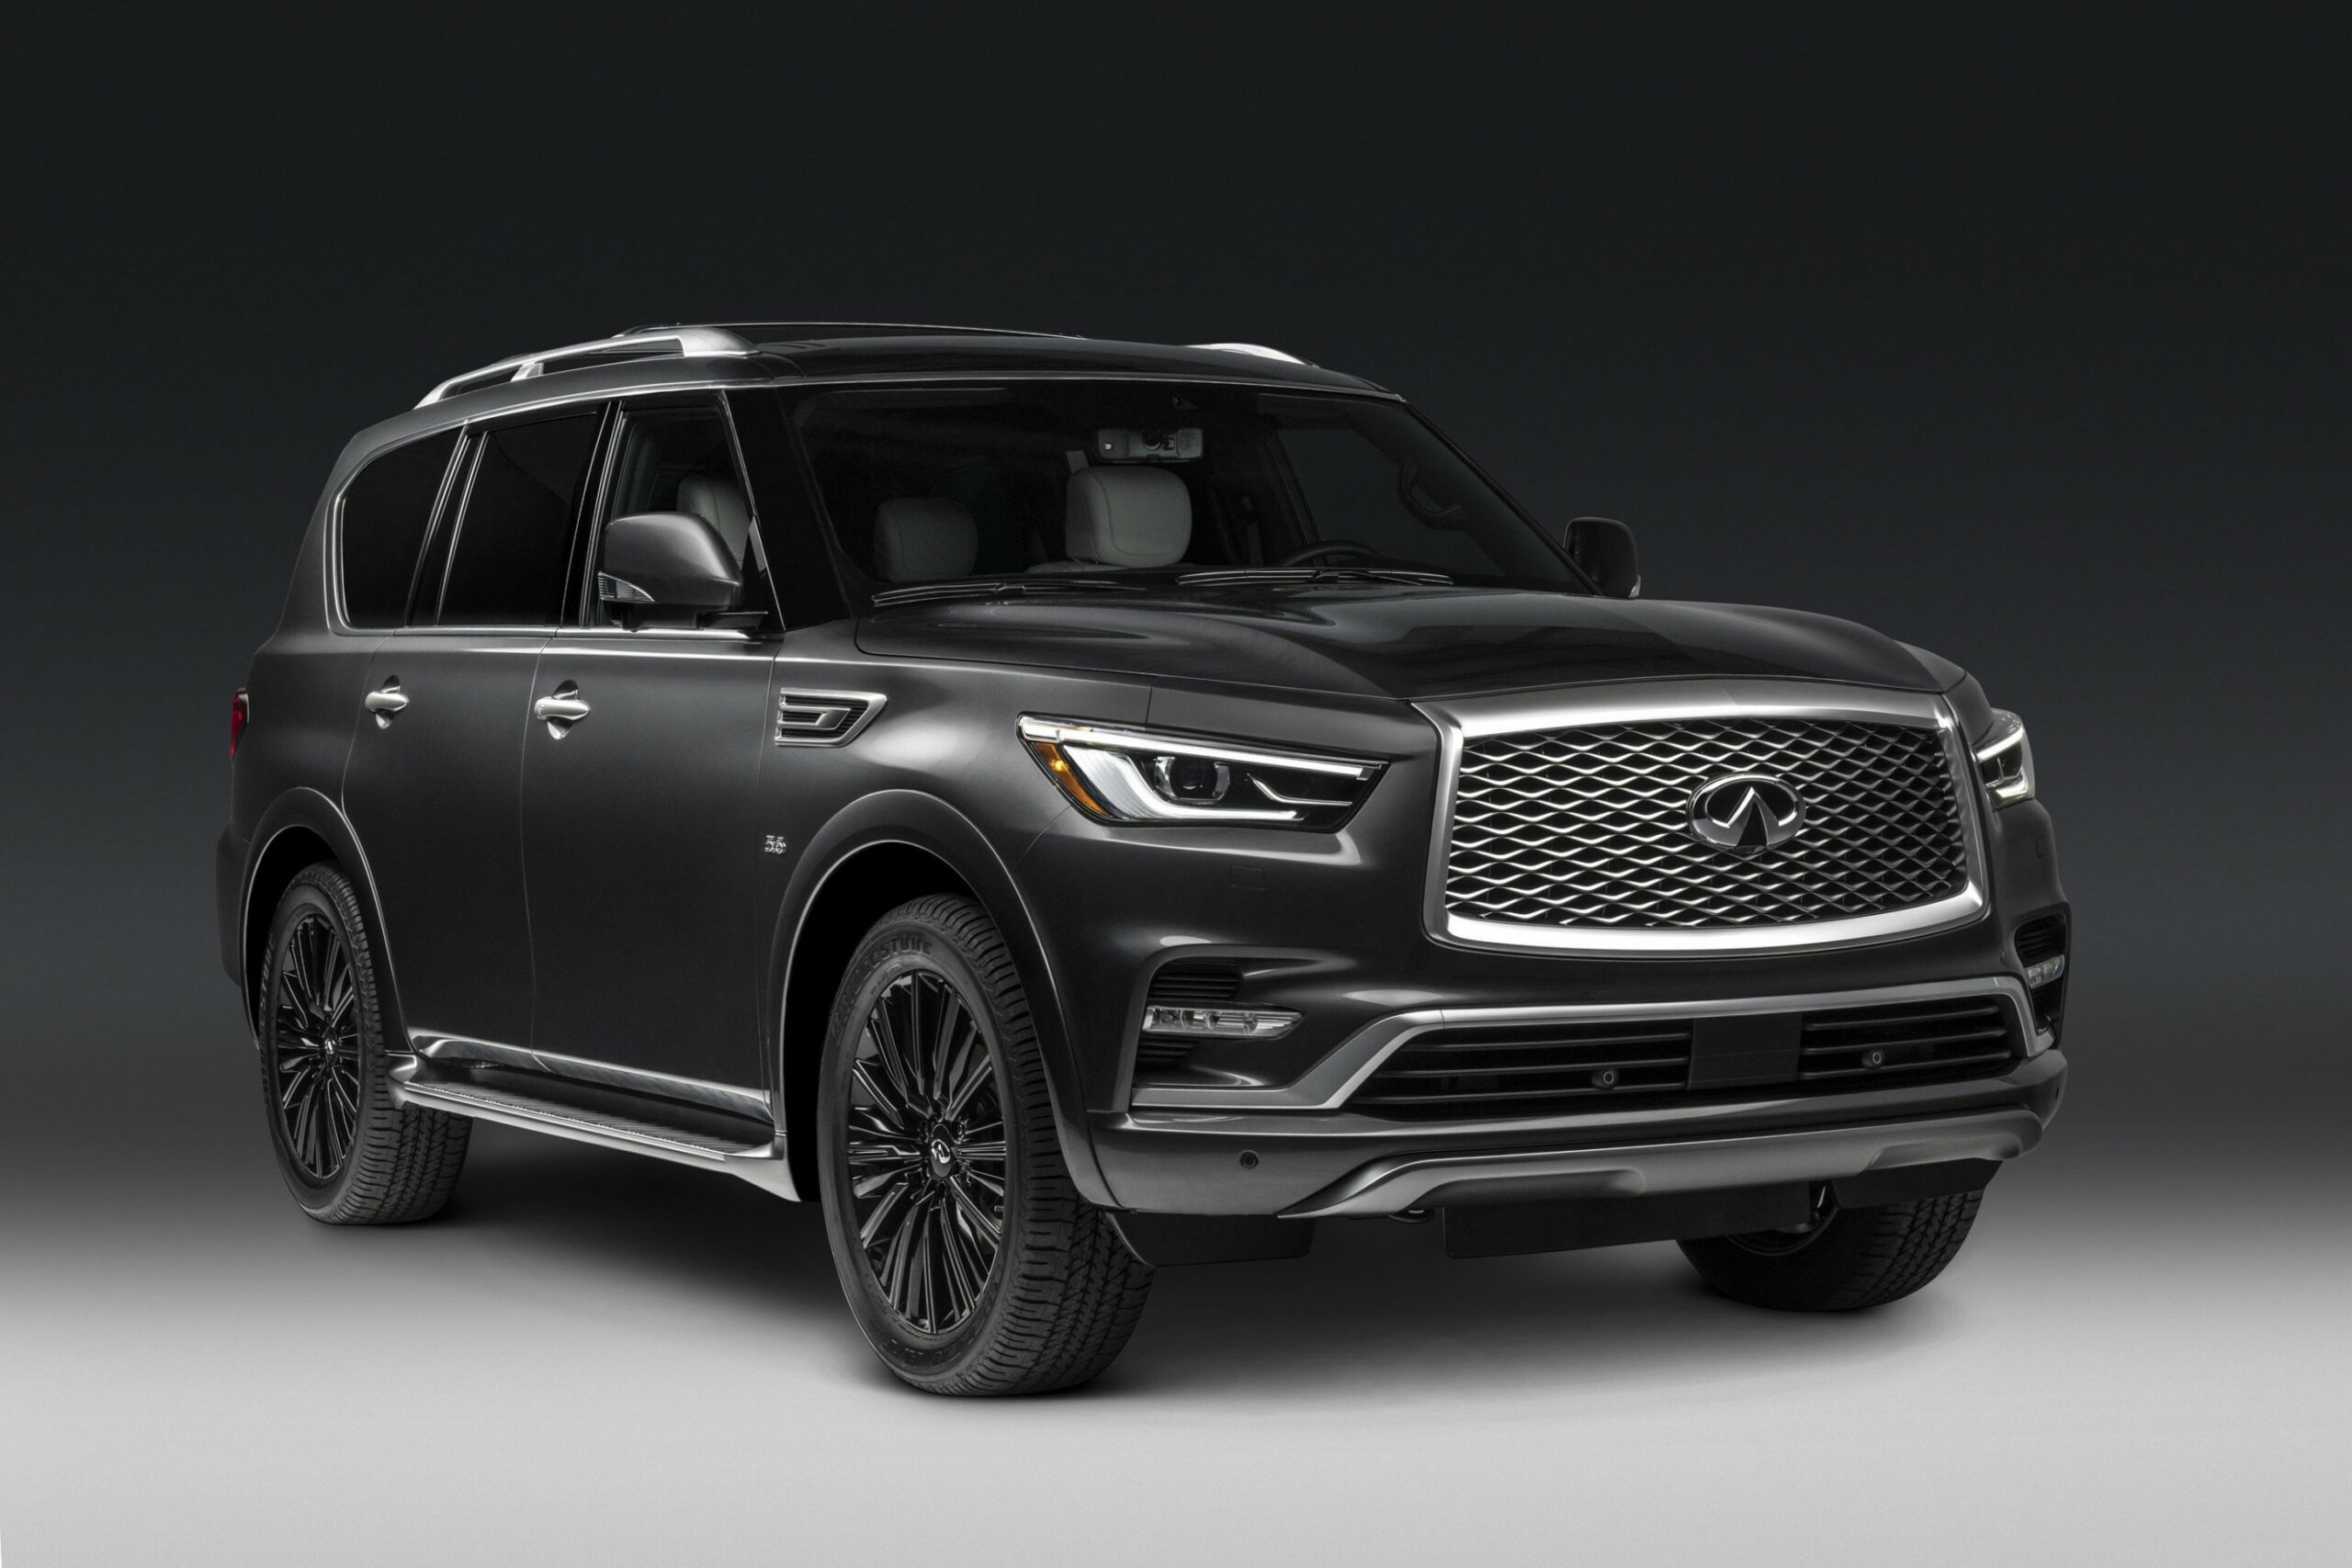 7 Infiniti Qx7 Limited Picture (With images) | Luxury suv ...